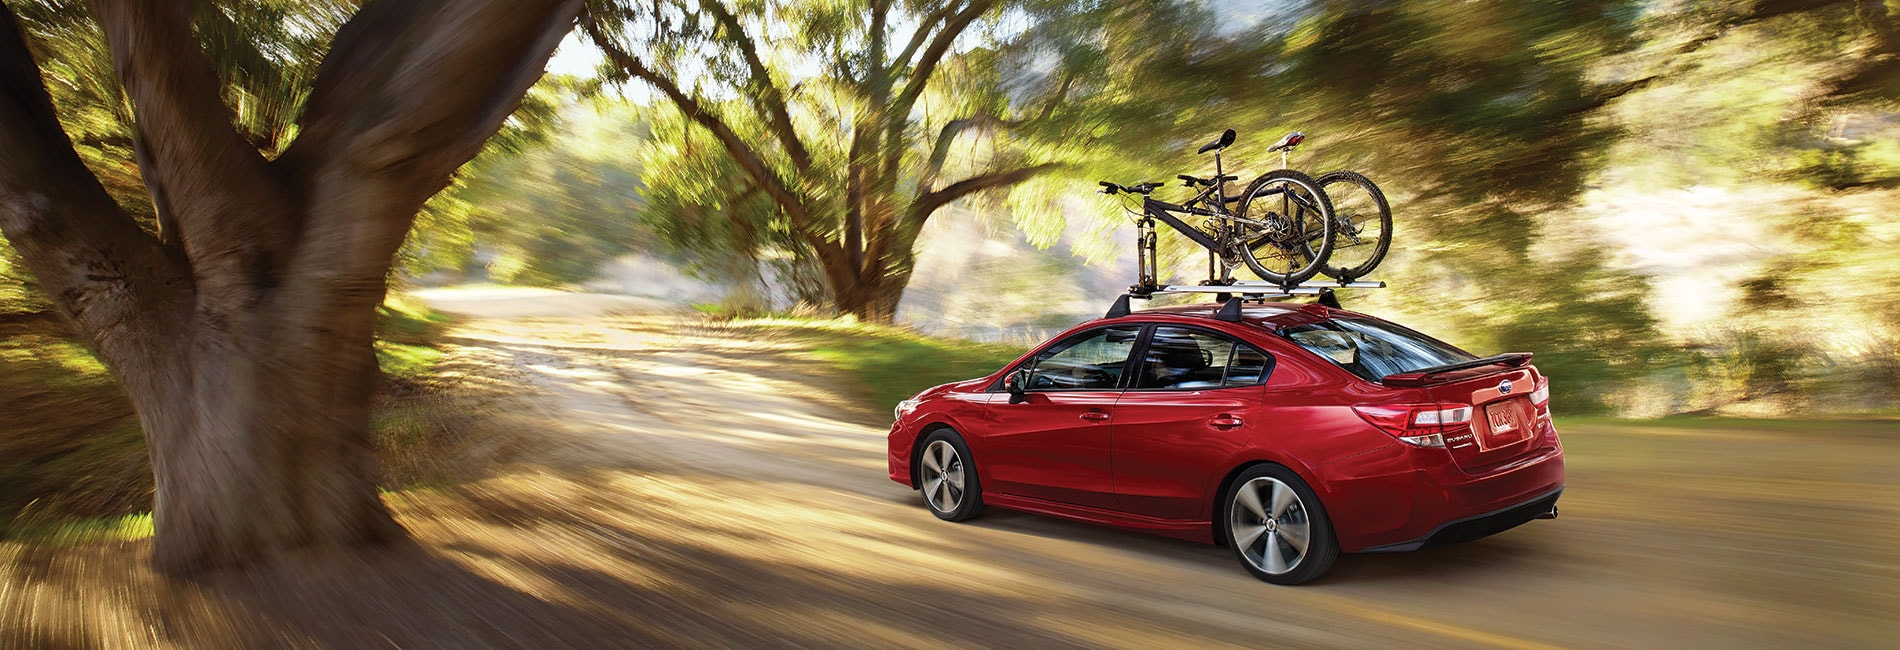 Subaru Impreza Exterior Vehicle Features